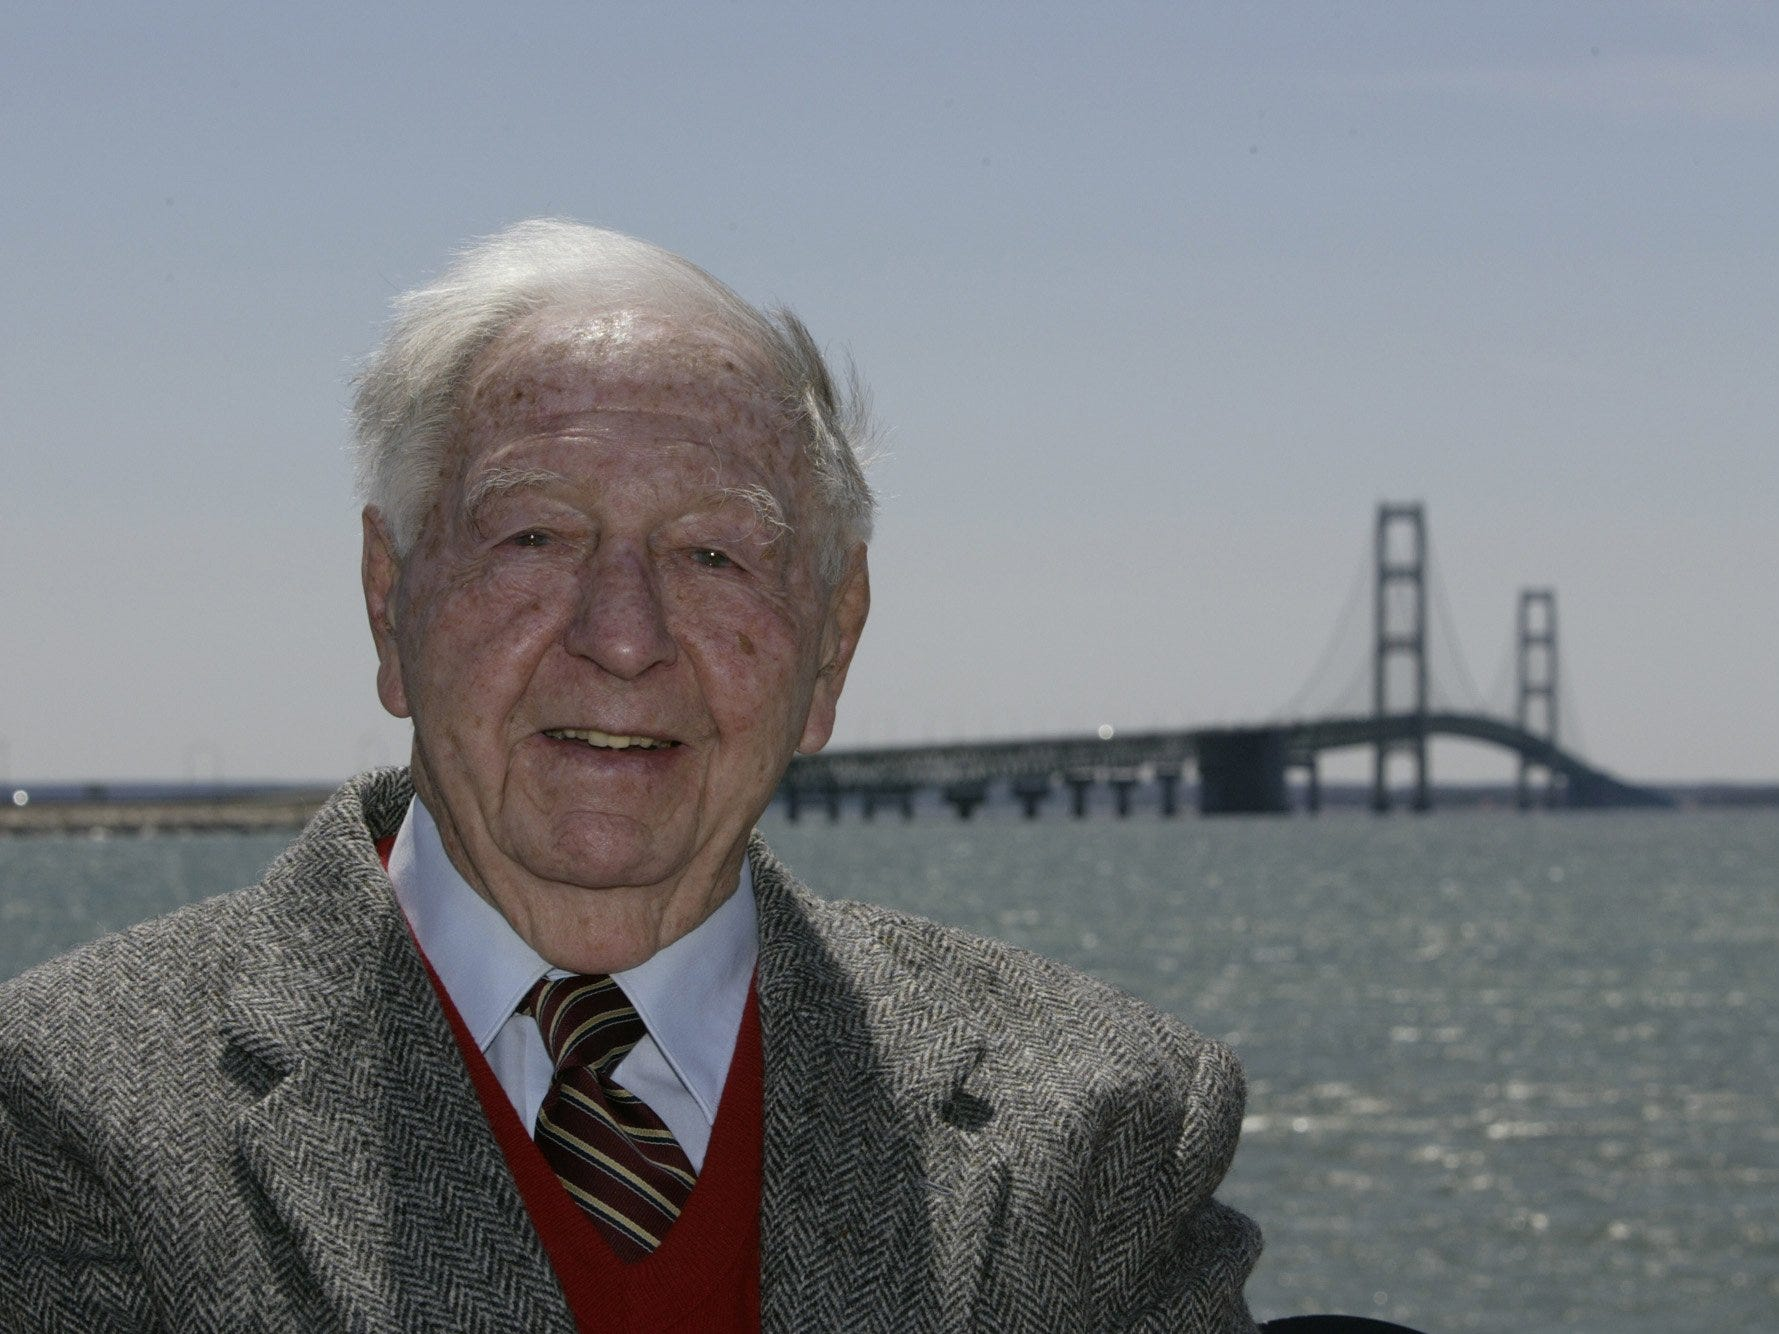 Lawrence Rubin, the first executive secretary of the Mackinac Bridge Authority, stands in front of the bridge on Friday, May 7, 2004. Even as dignitaries broke ground May 7, 1954, skeptics considered the project farfetched: a bridge across the 5-mile-long, windswept waters separating Michigan's Lower and Upper Peninsulas.